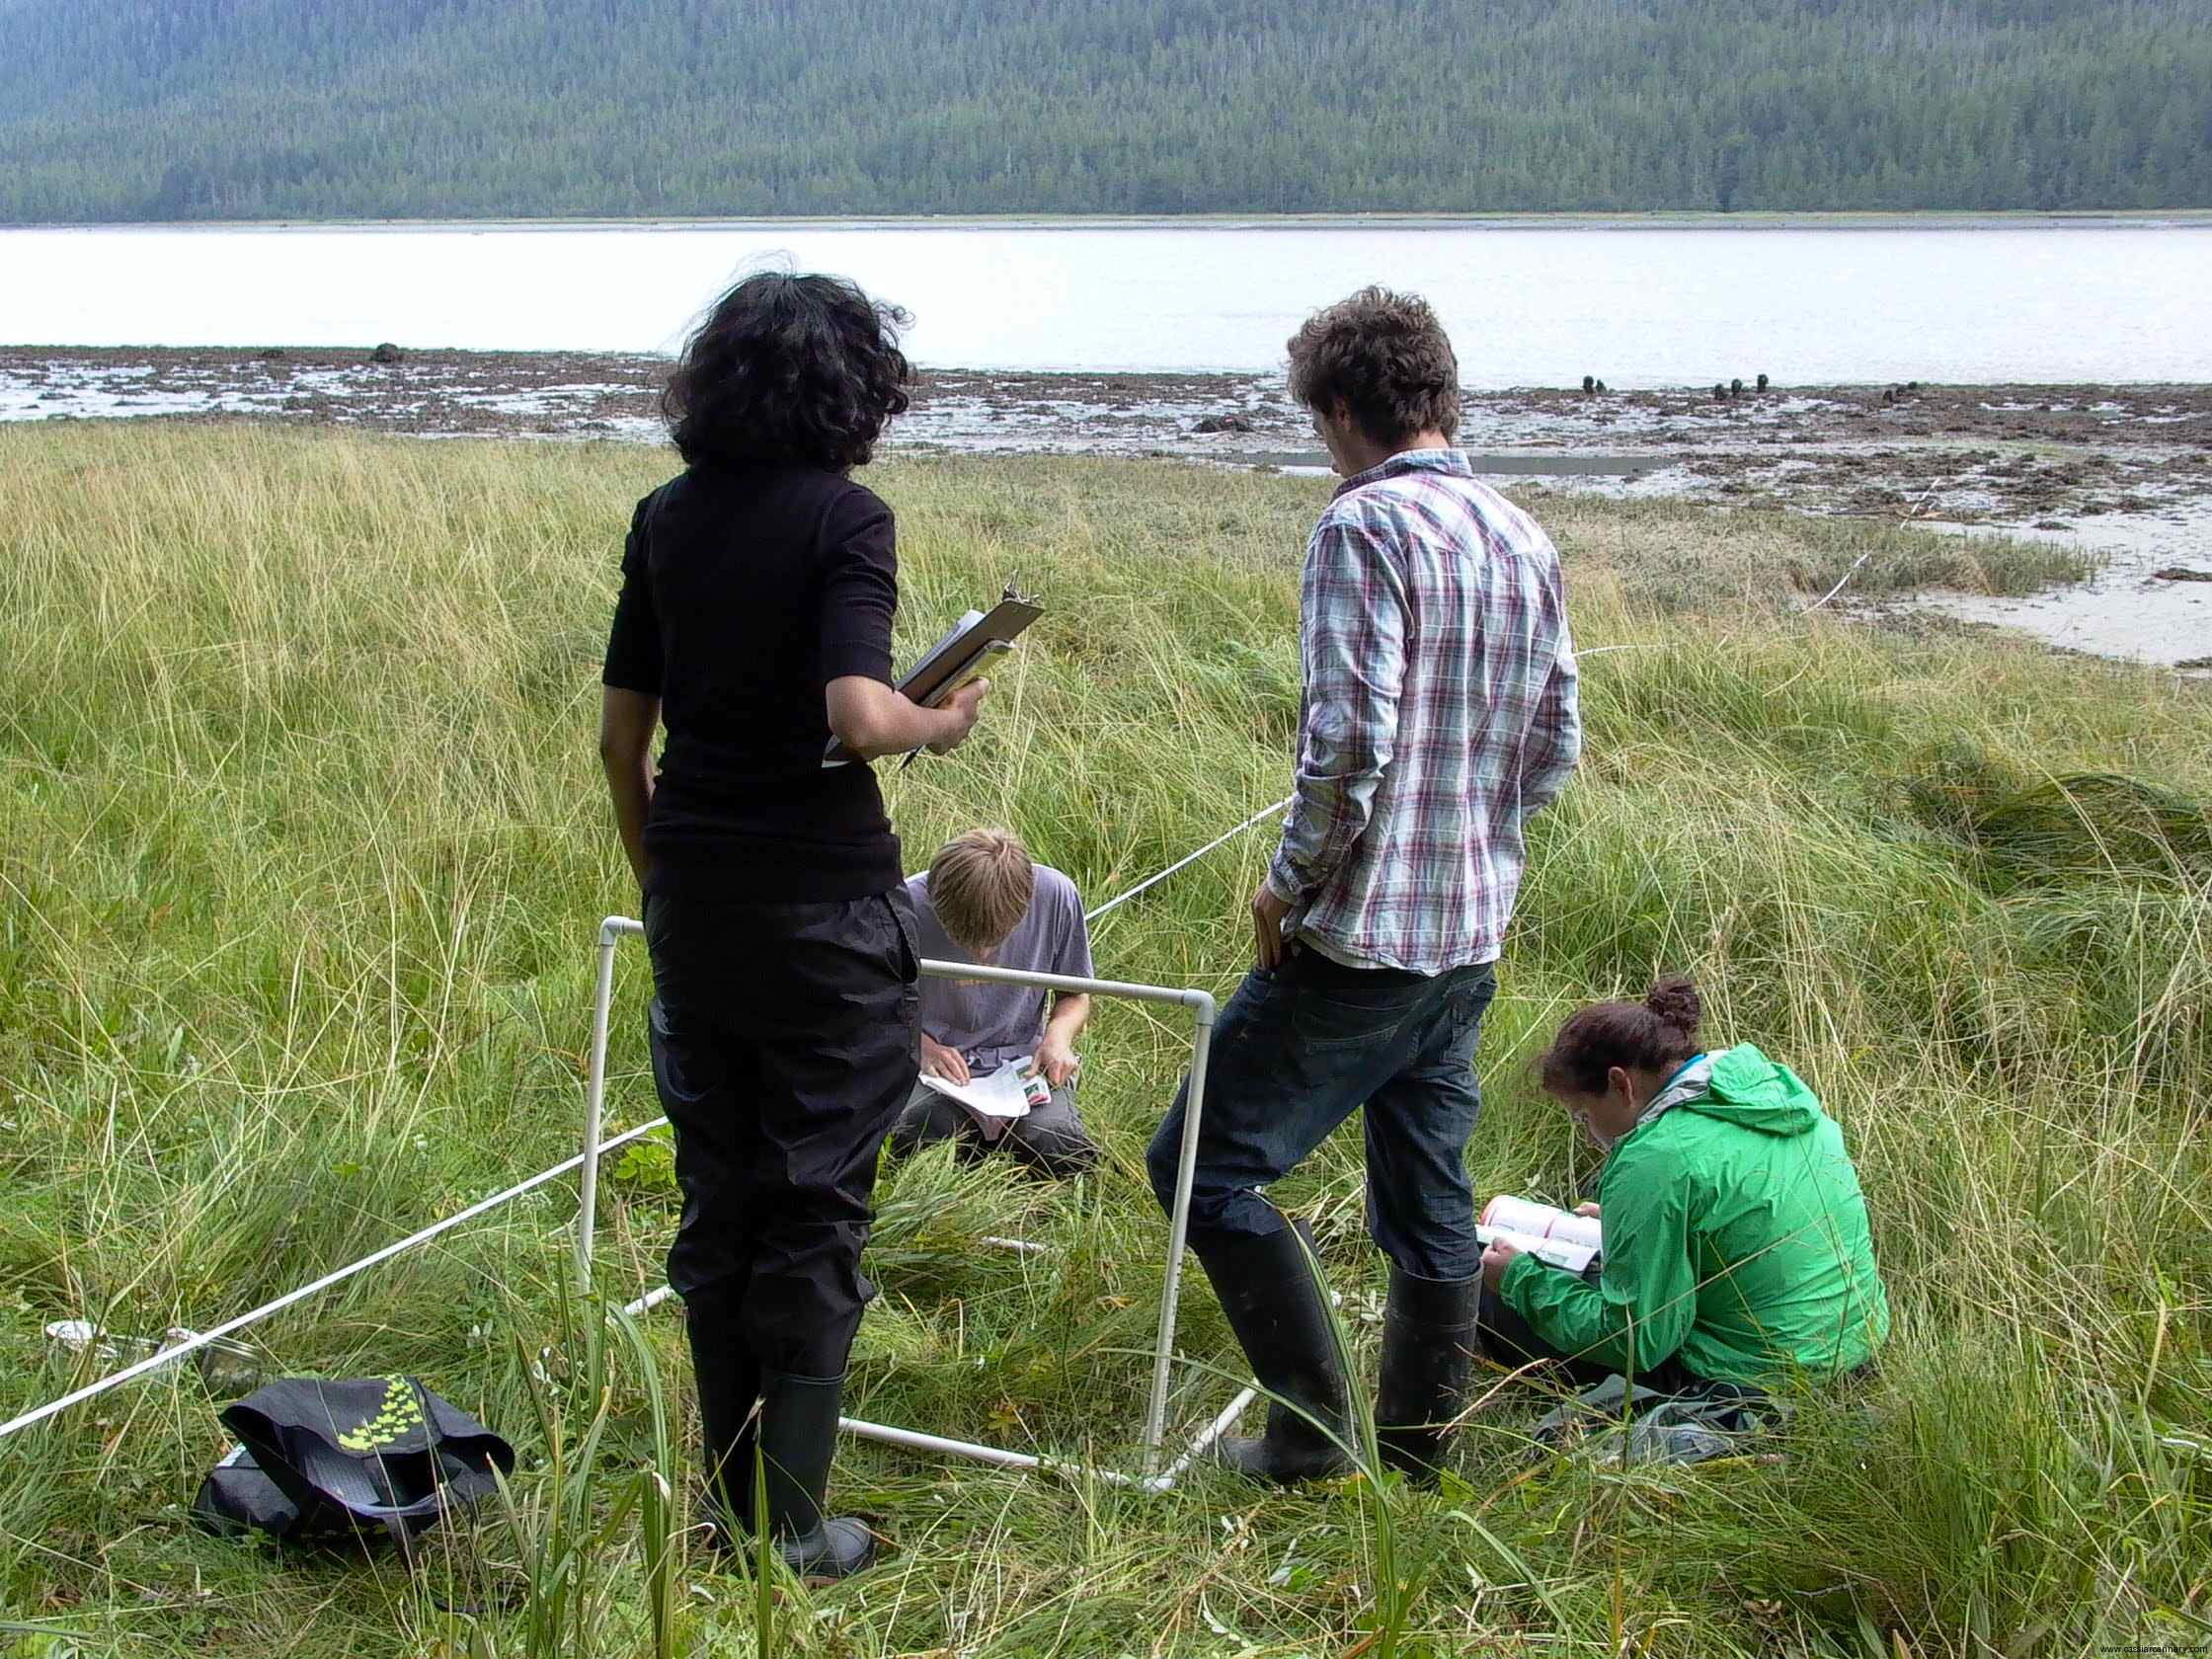 Cassiar Cannery - identifying the diverse species as the students work their way towards the ocean